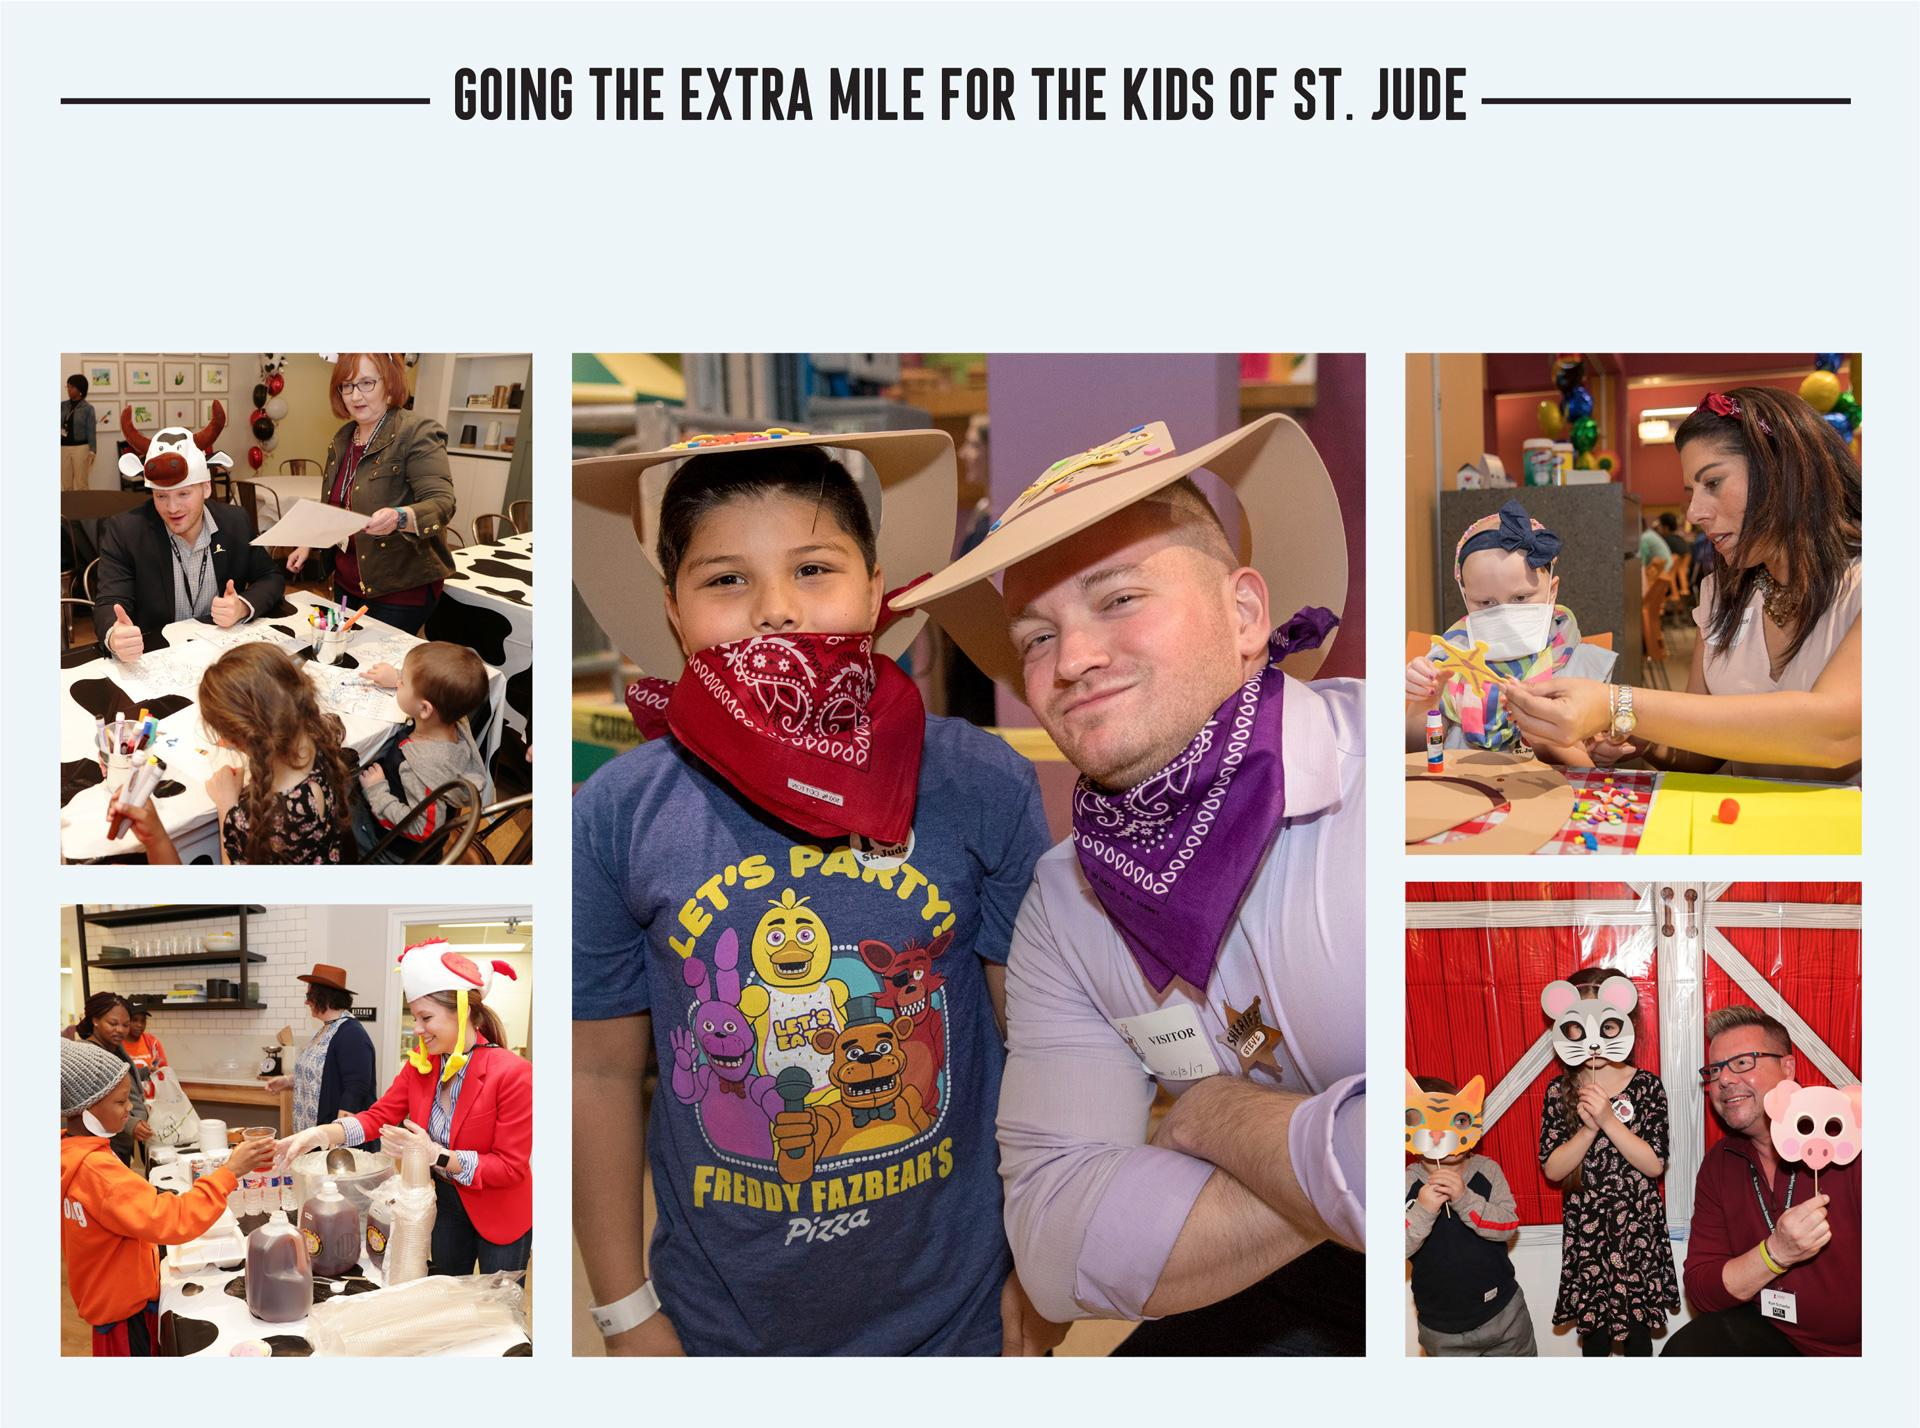 Going the extra mile for the kids of St. Jude